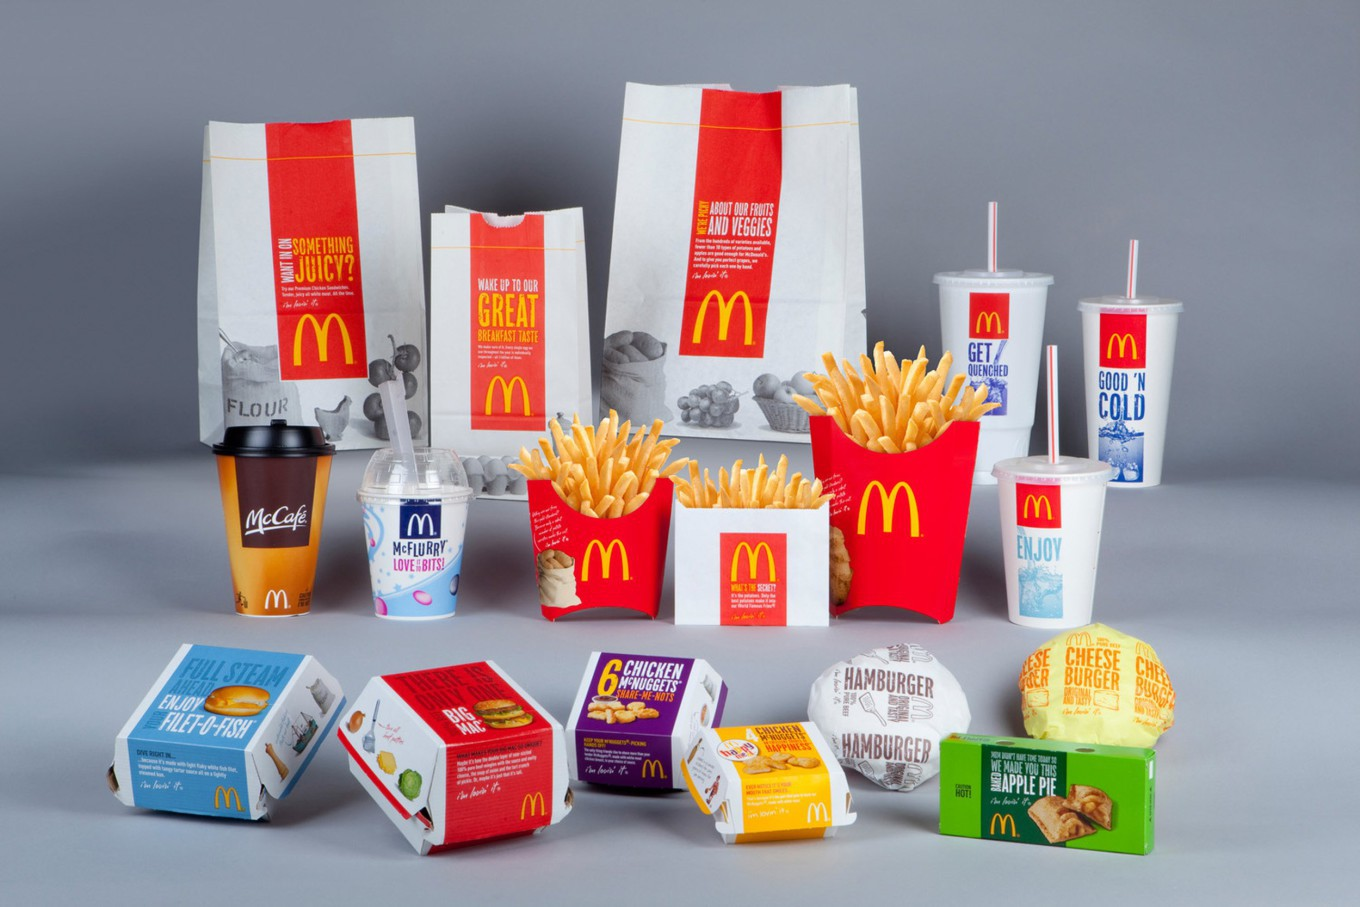 reaction paper to mcdonalds suppliers advertisement